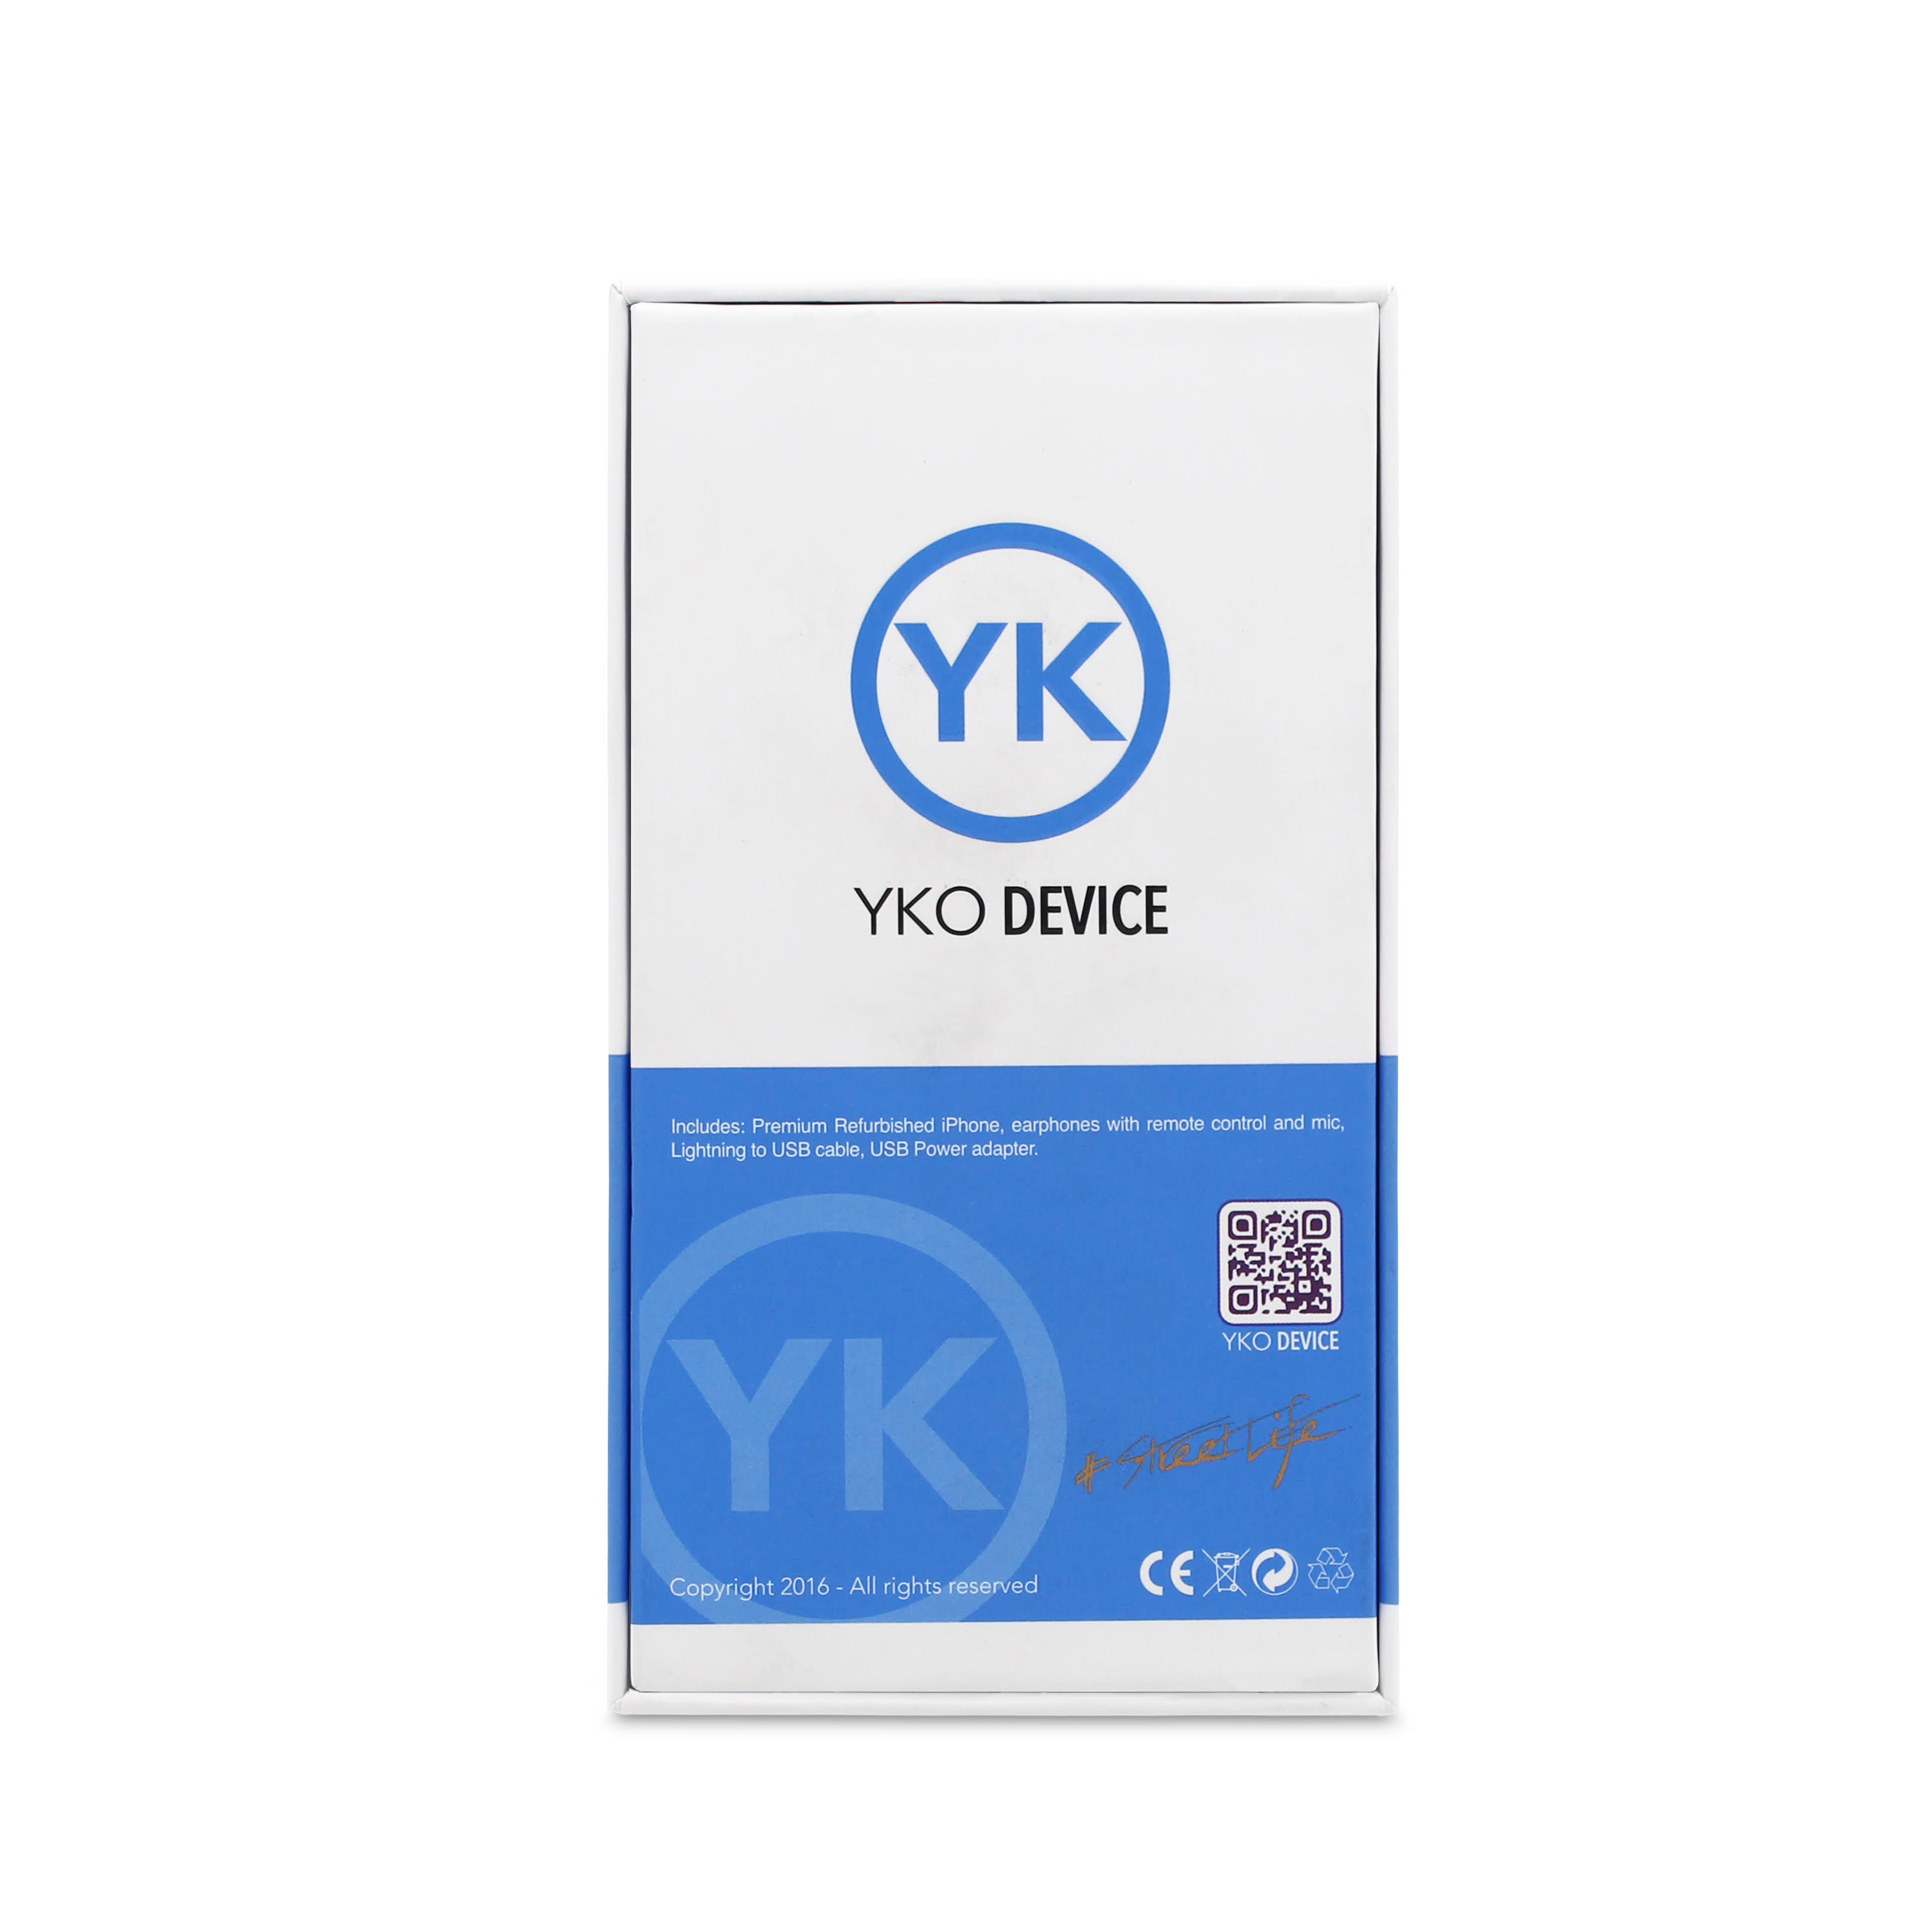 Packaging yko device